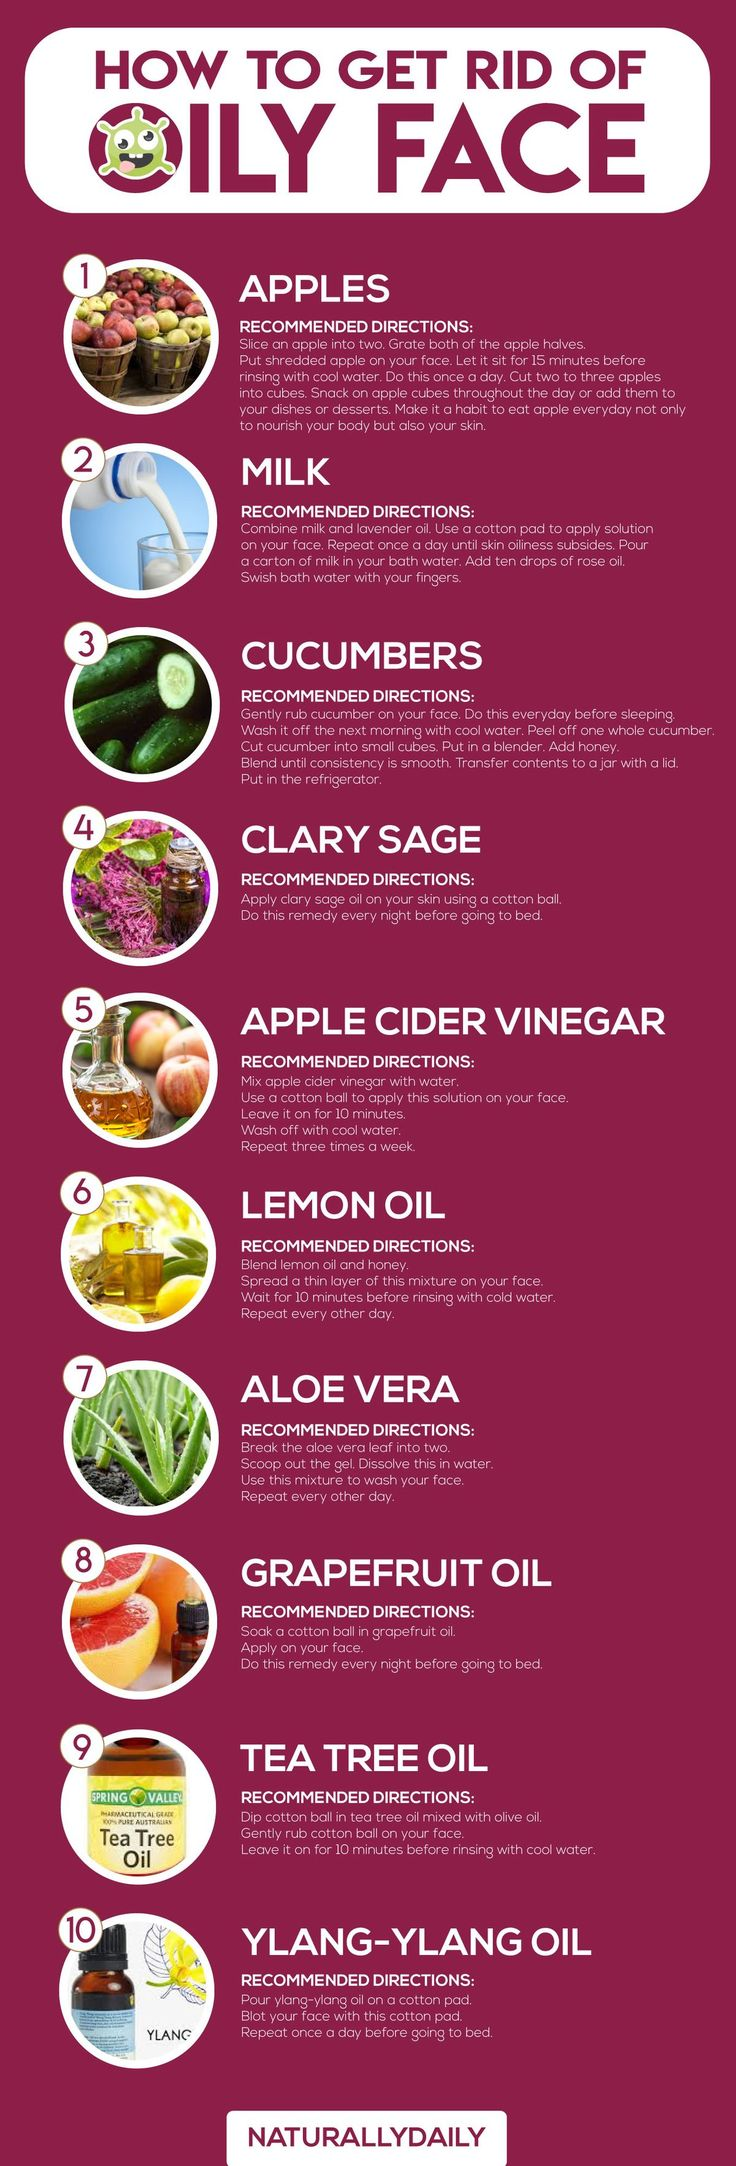 How to Get Rid of Oily Face 10 Best Home Remedies